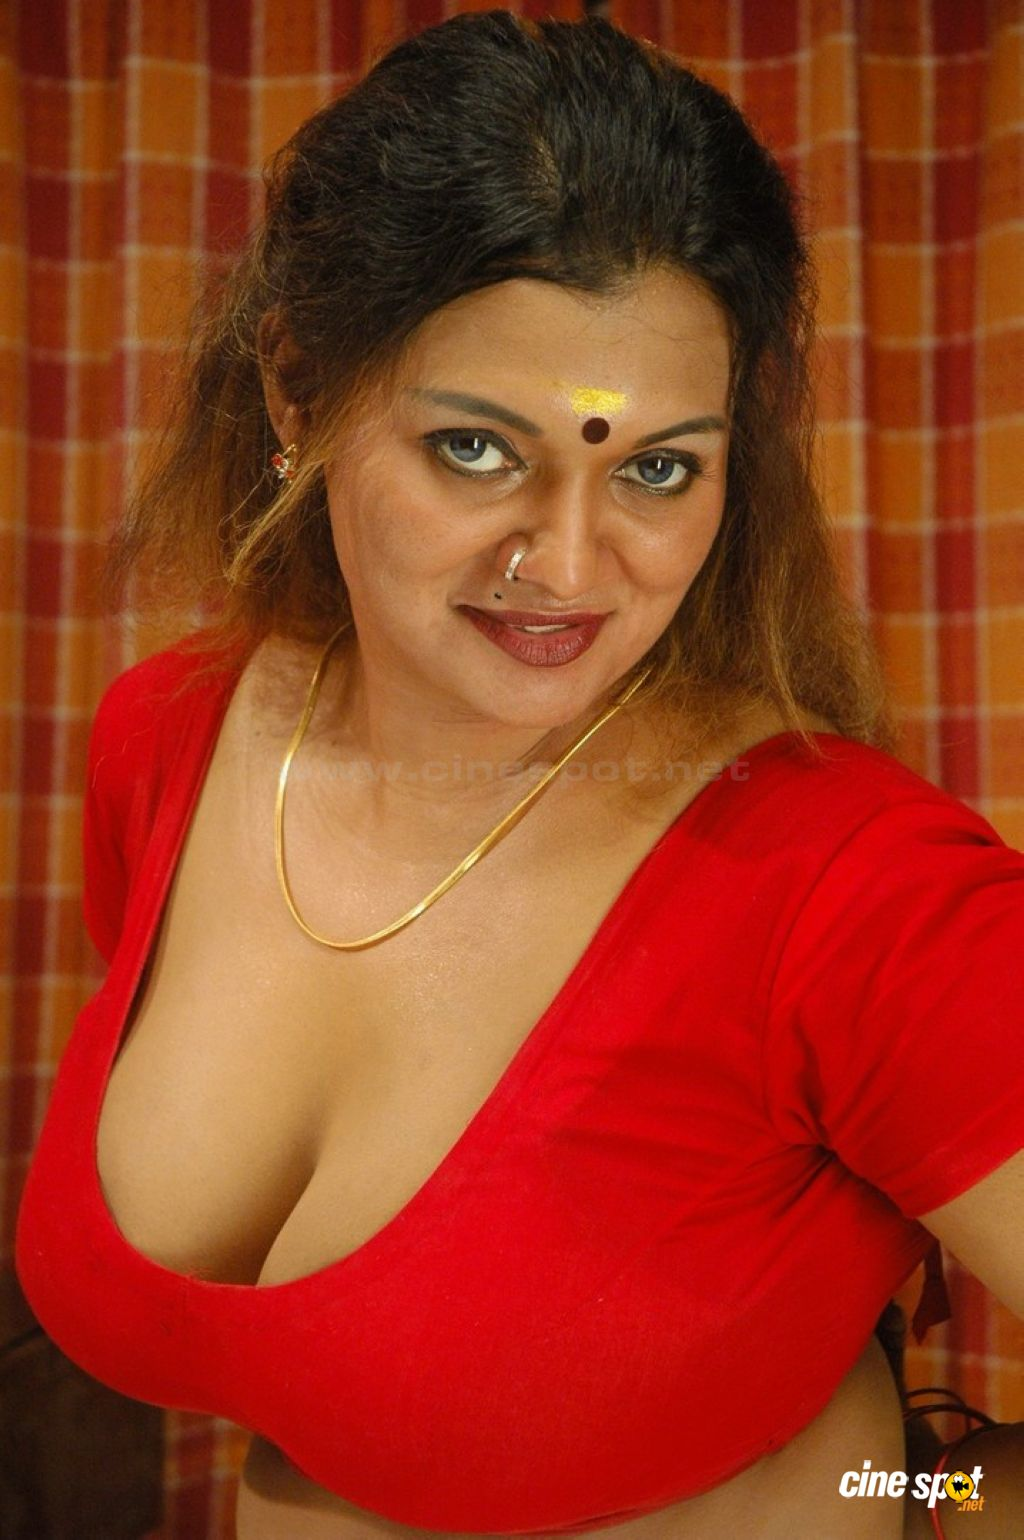 Thiruttu+Sirukki+Hot+sexy+spicy+tamil+movie+photos+(36).JPG